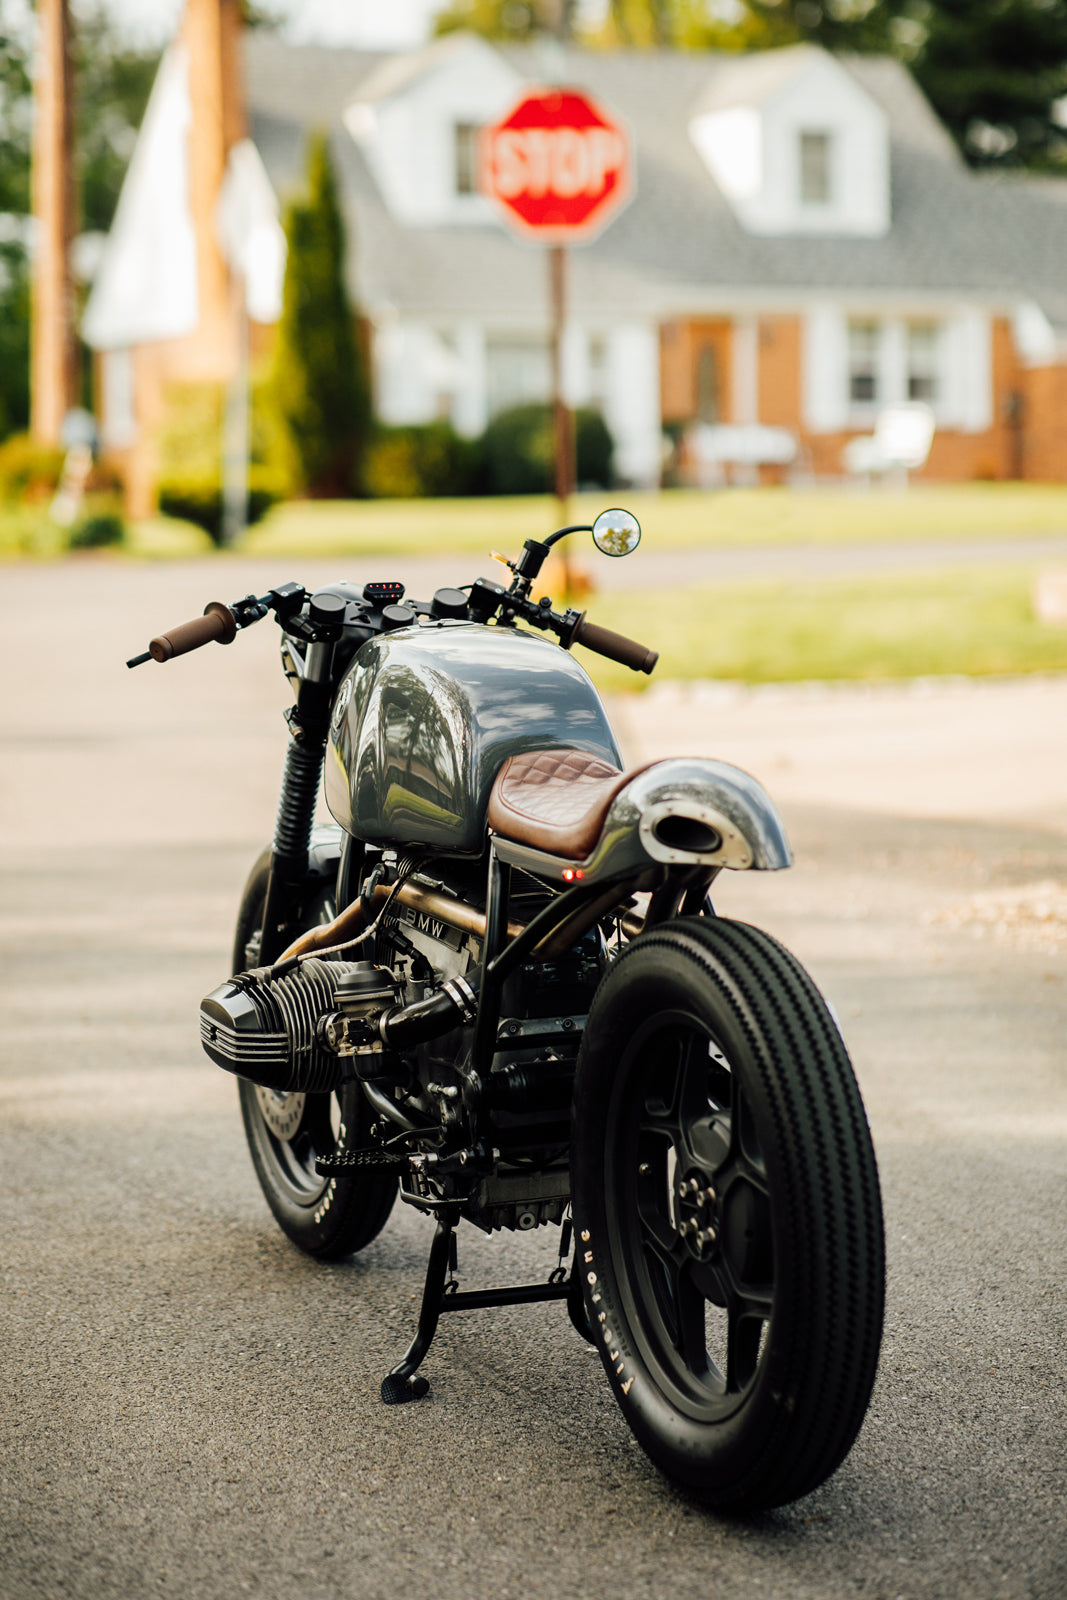 BMW R100 Cafe Racer Custom Motorcycle Pittsburgh